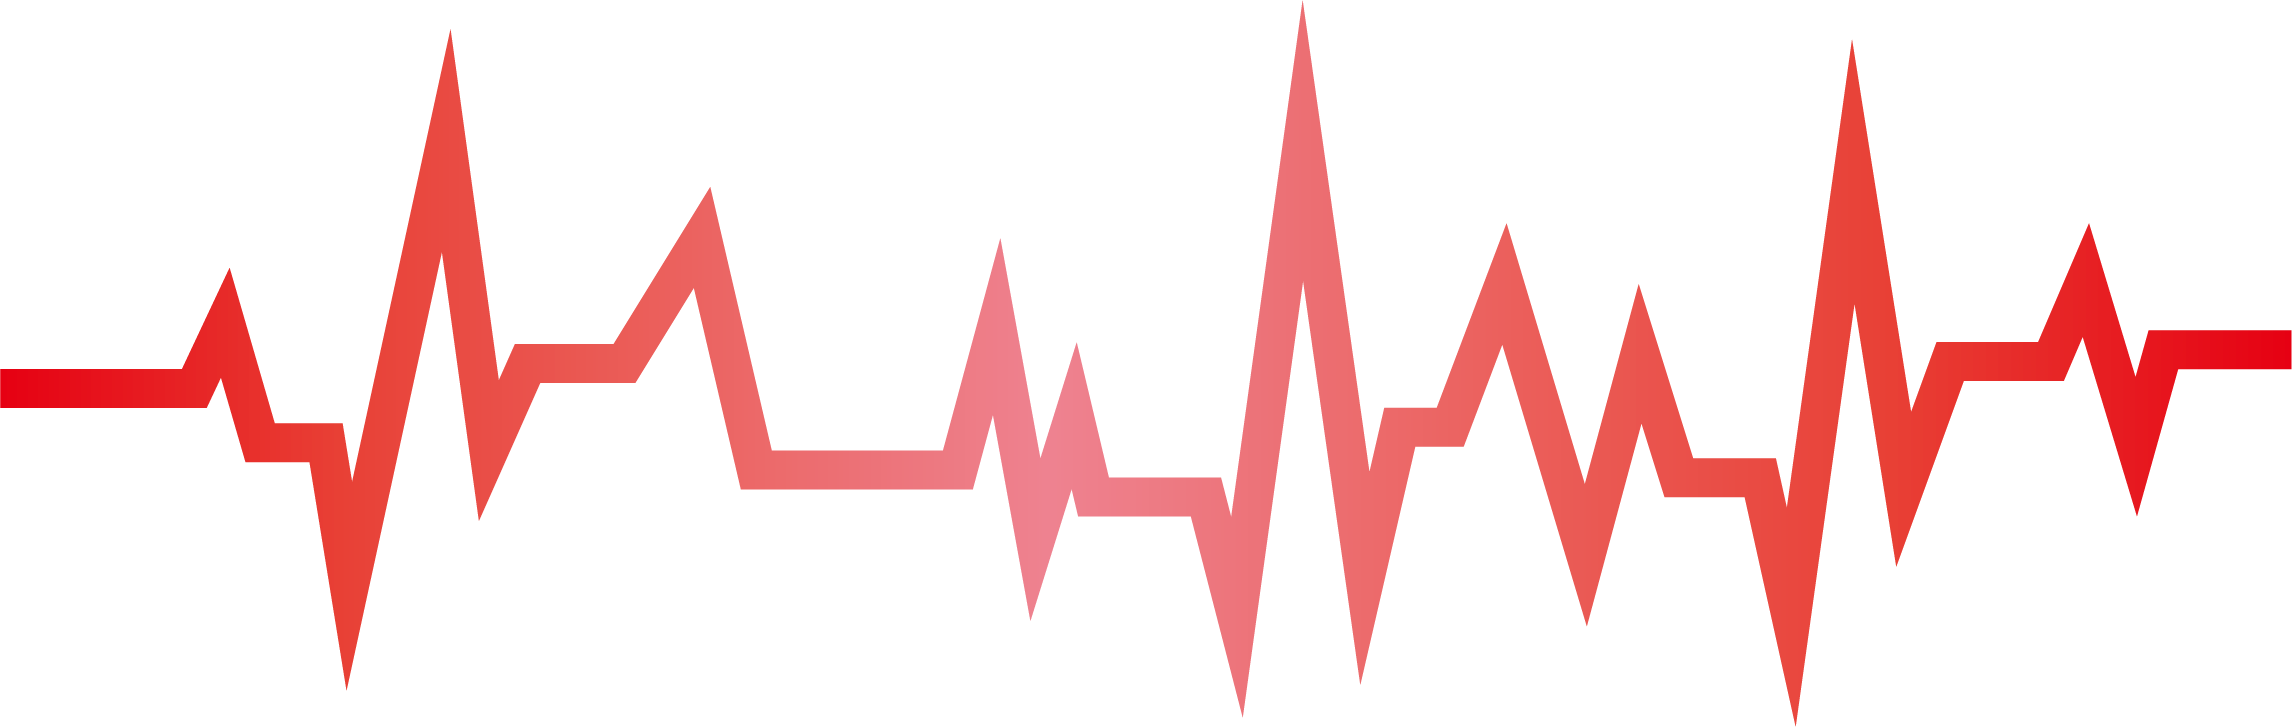 Heart monitor png. Electrocardiography rate touchscreen computer